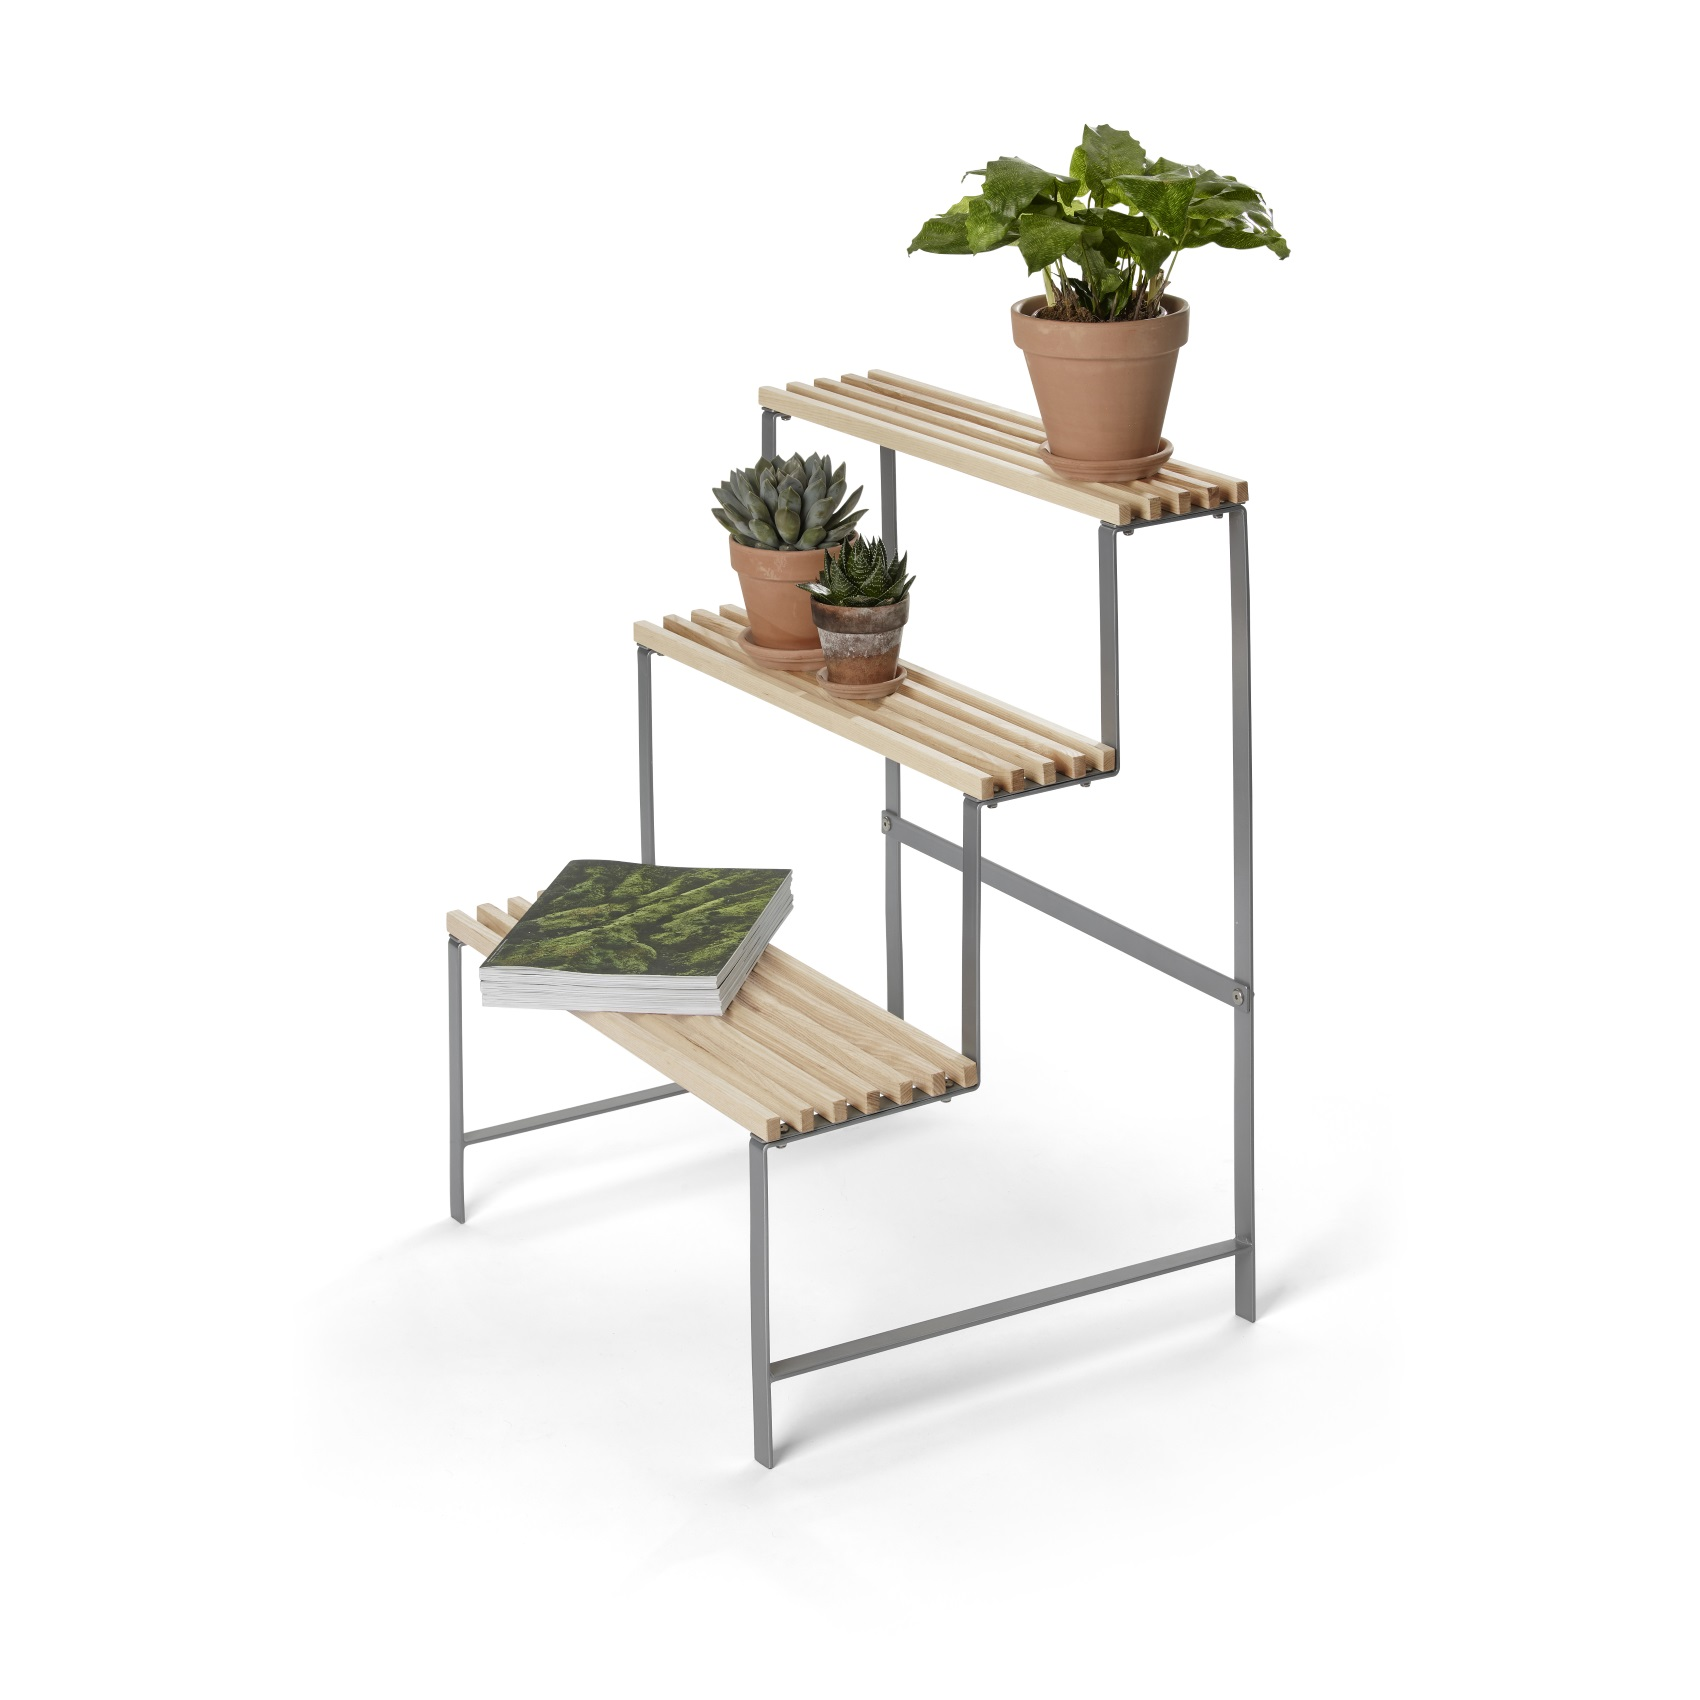 Blomtrappa Flower Pot Stand, Design House